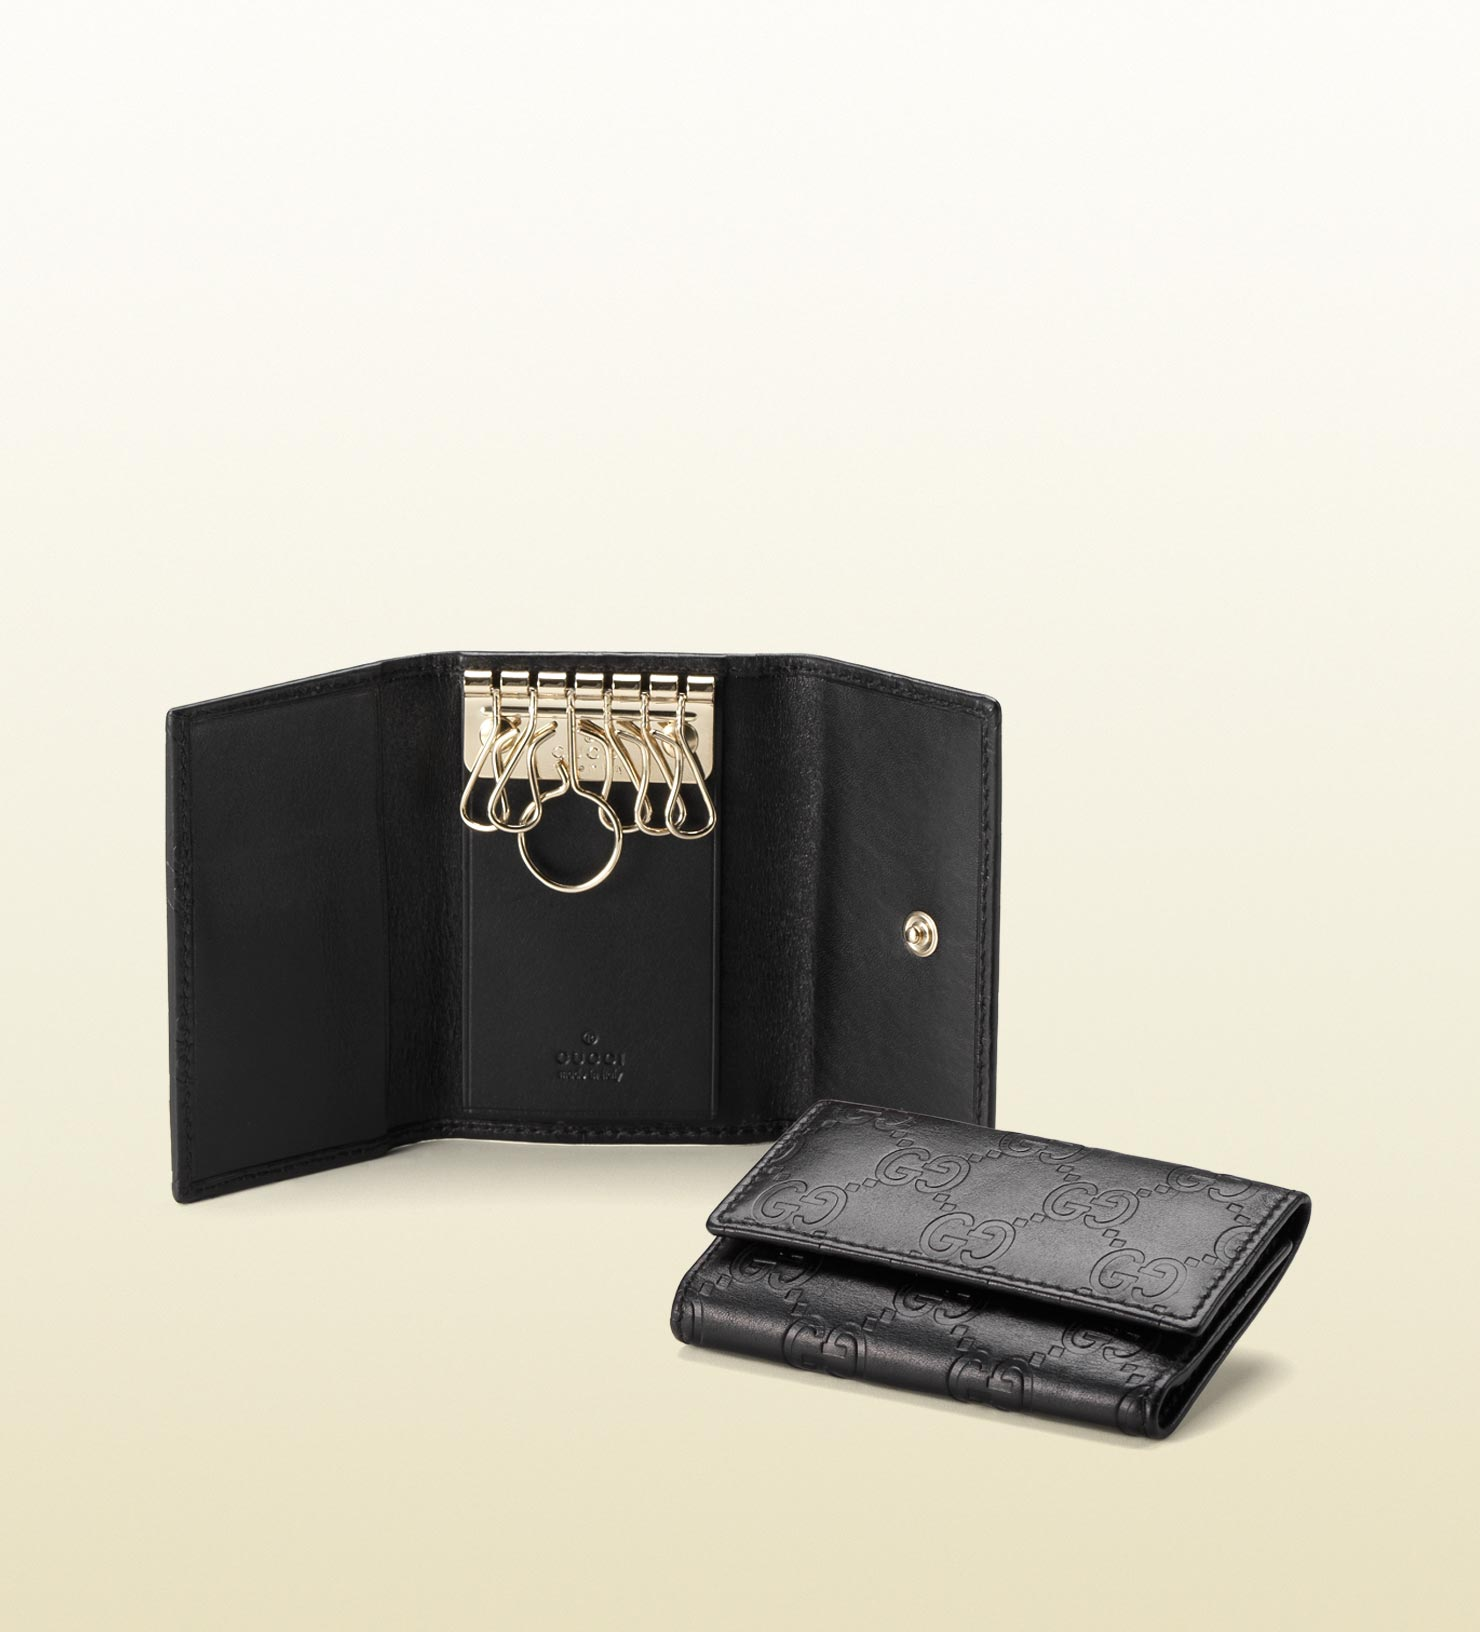 f118aa6a2 Gucci Sima Leather Key Case in Black for Men - Lyst